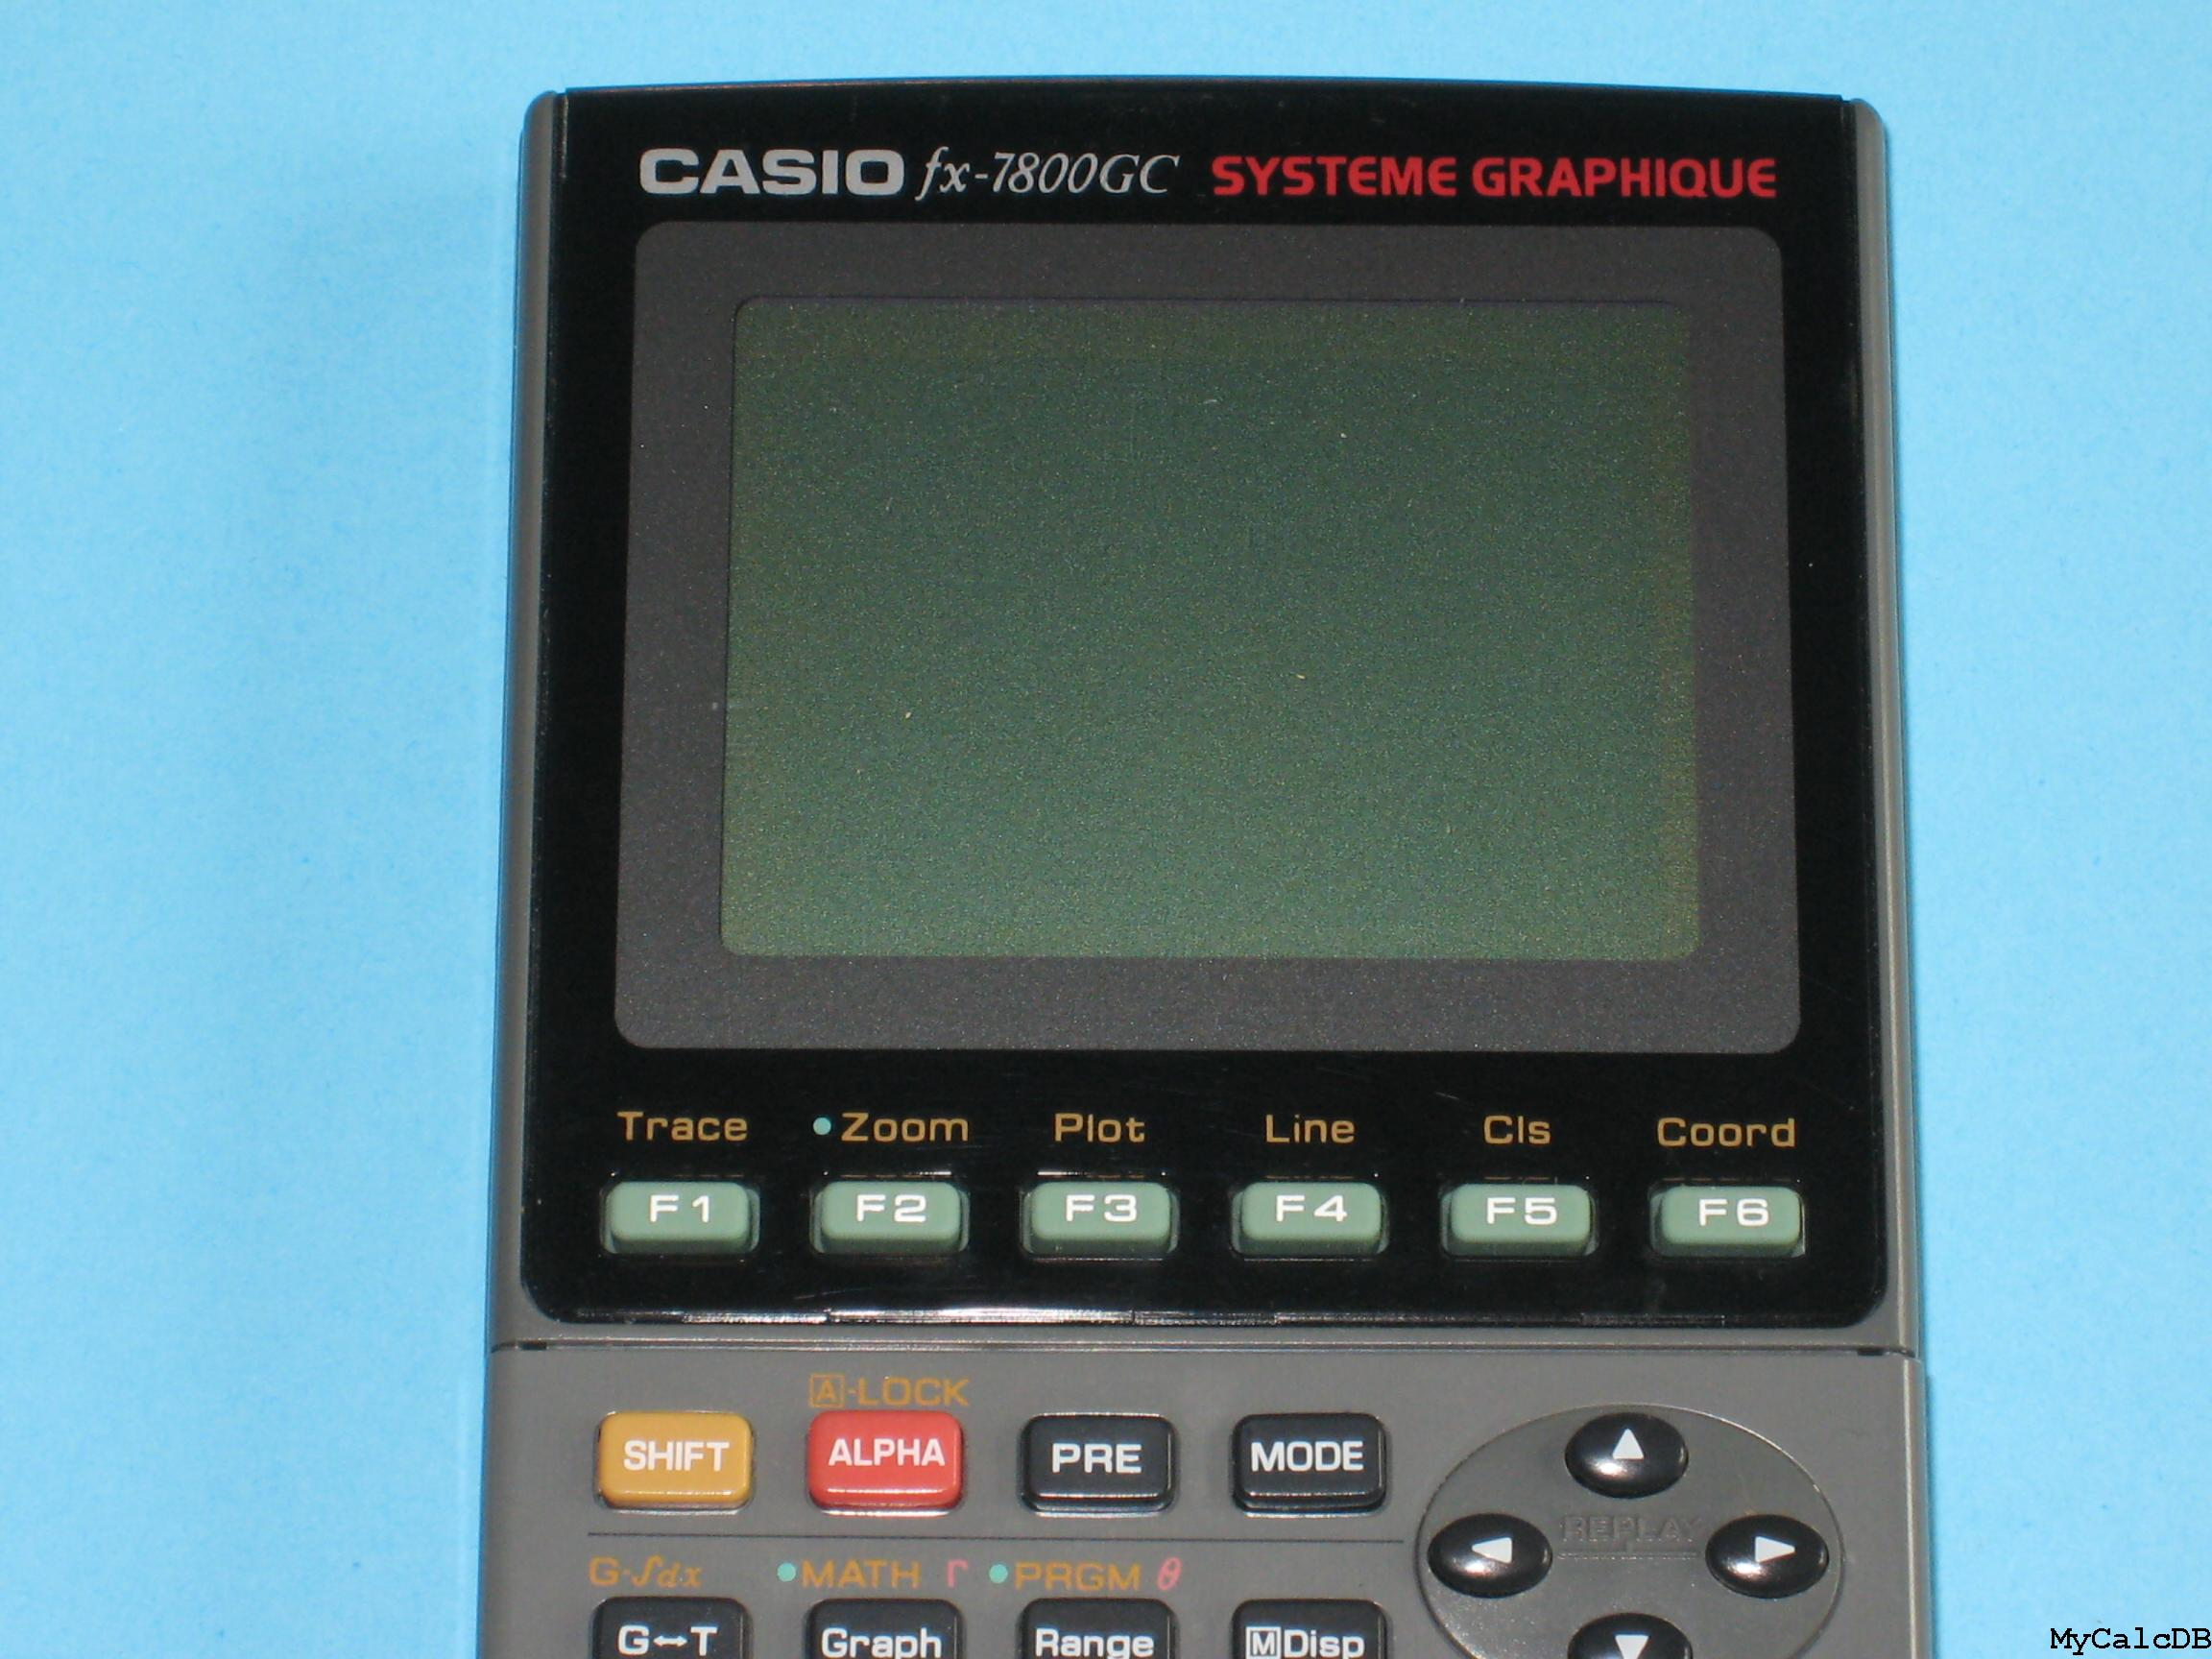 Casio fx-7800GC